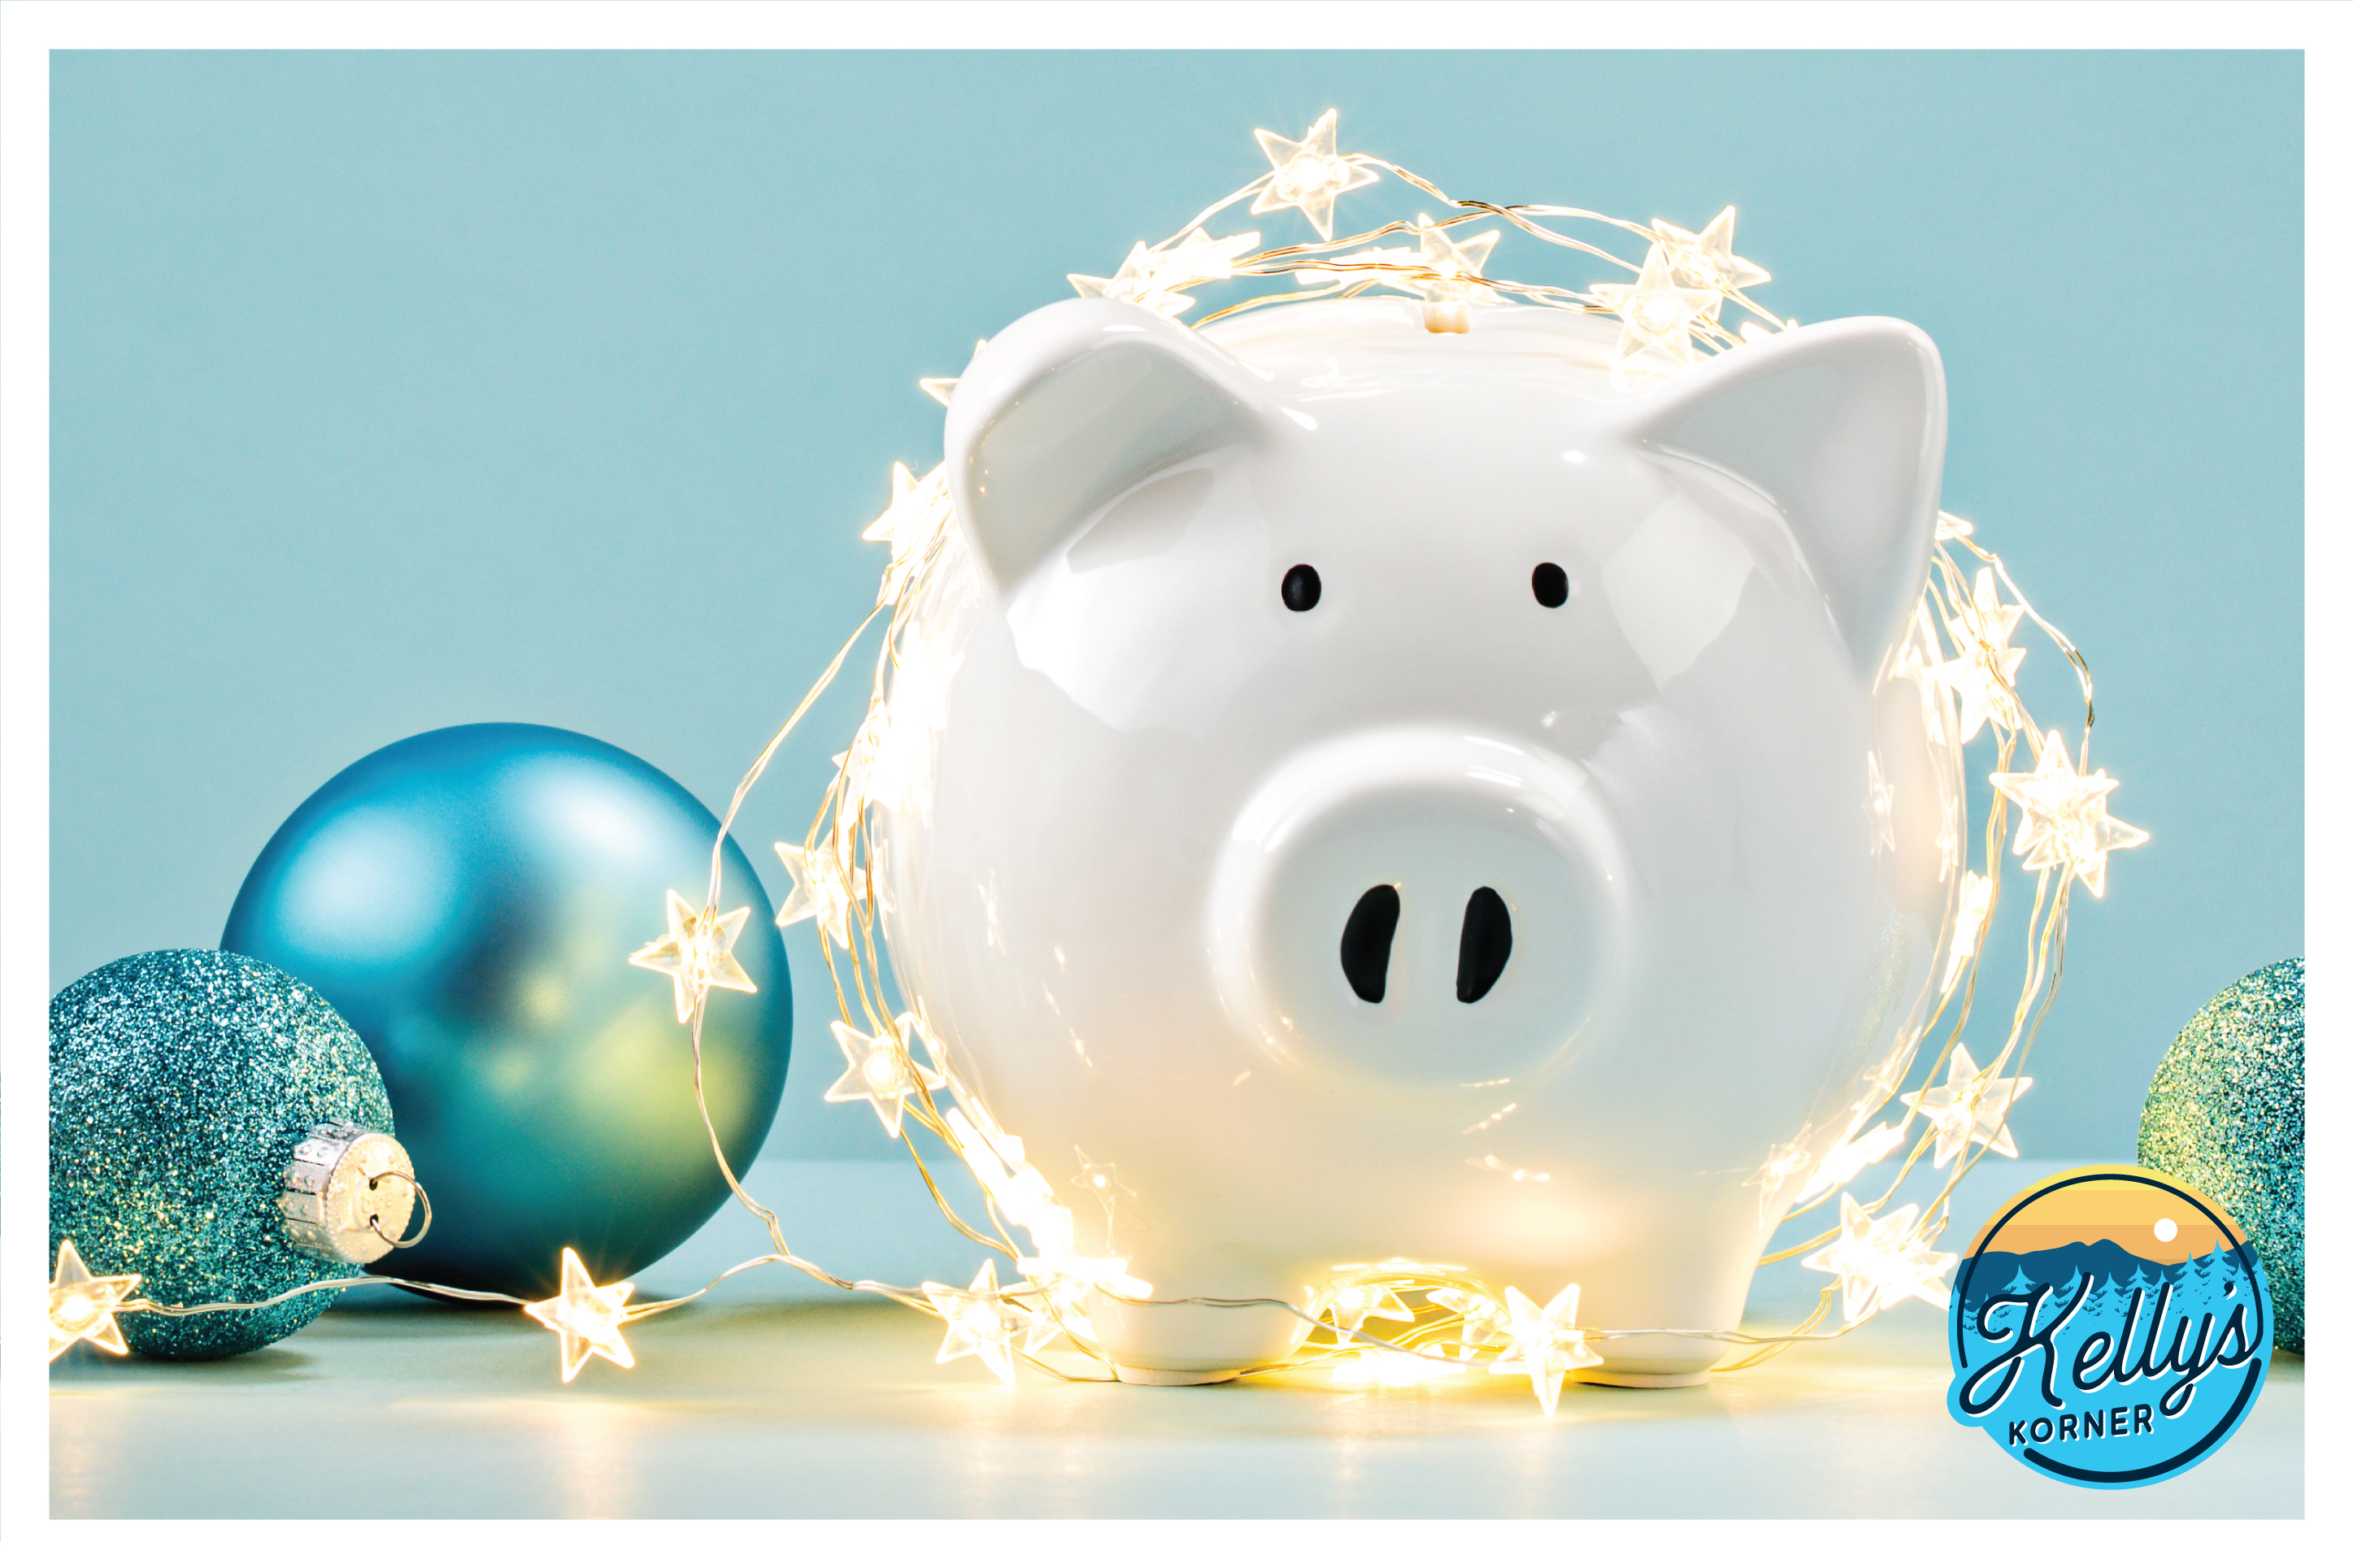 Kelly's Korner: Budgeting for the Holidays During COVID-19